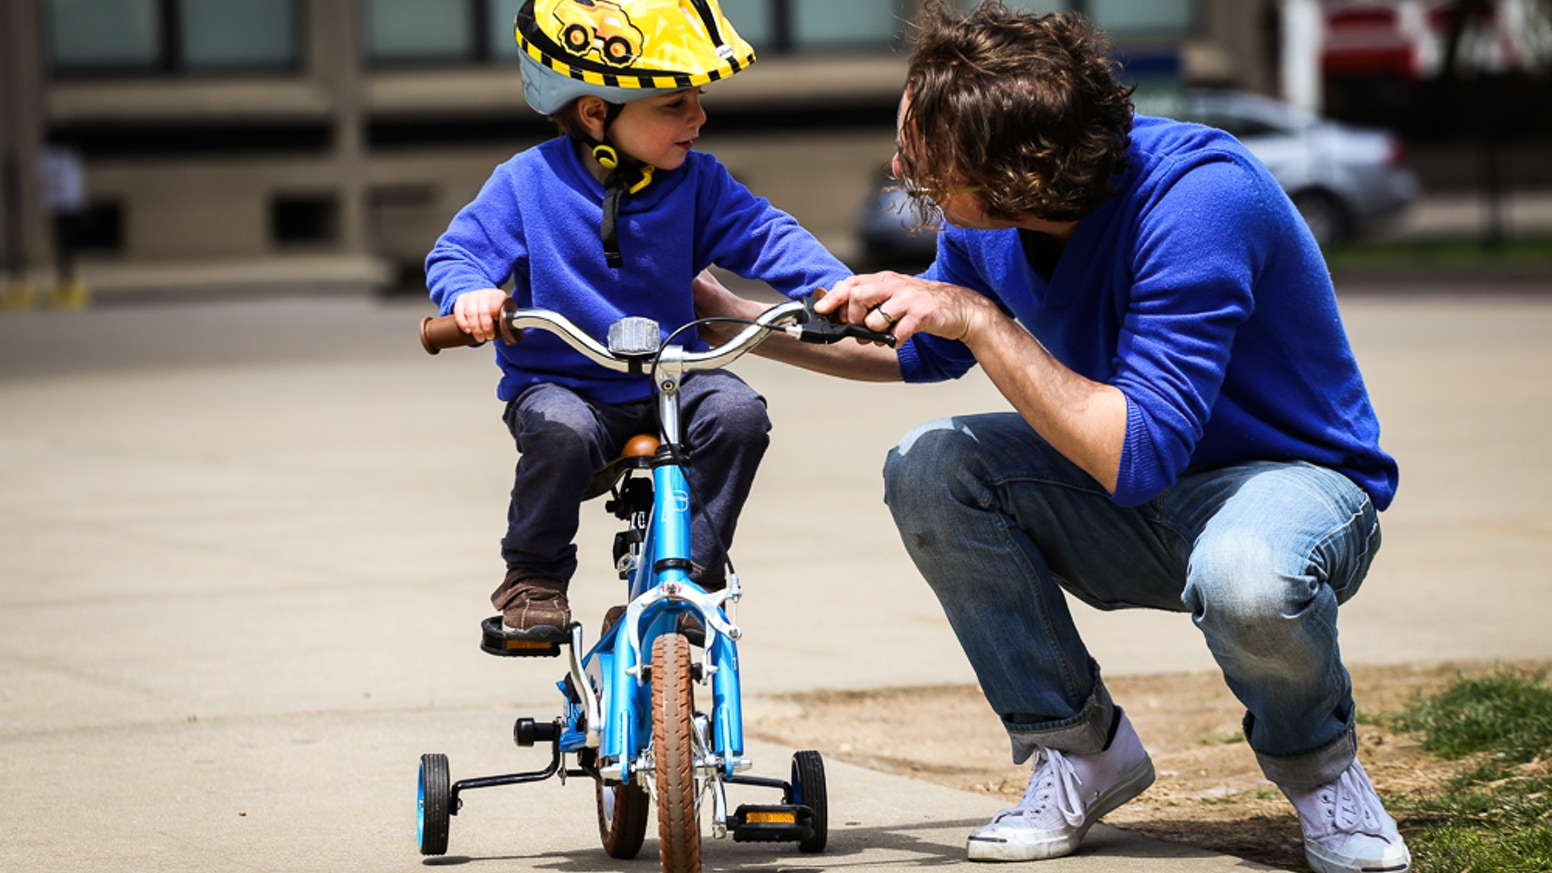 The most simple to ride, simple to maintain, and simple to adjust children's bike available, the Priority Start!